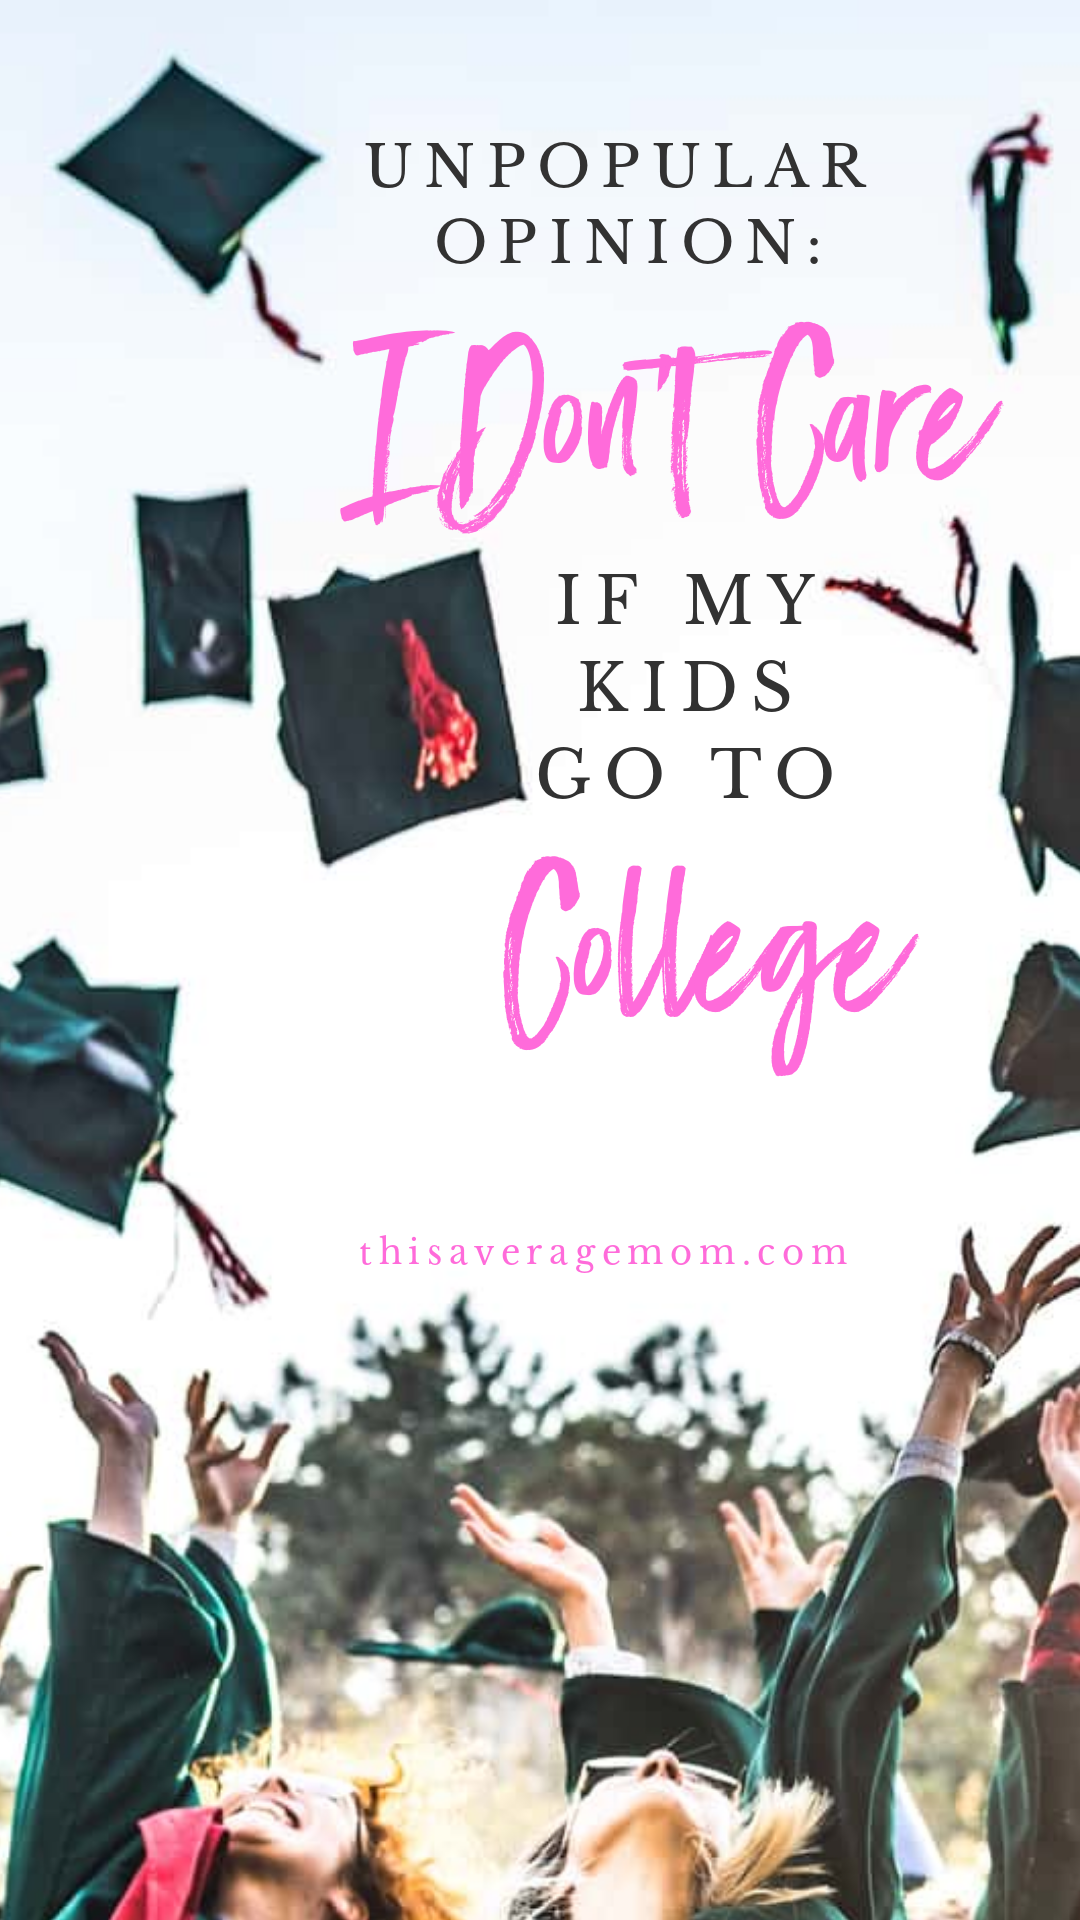 My kids may be young, but I've already decided: I don't care if they go to college or not. Explaining my thoughts against college/higher education on the blog. #education #college #university